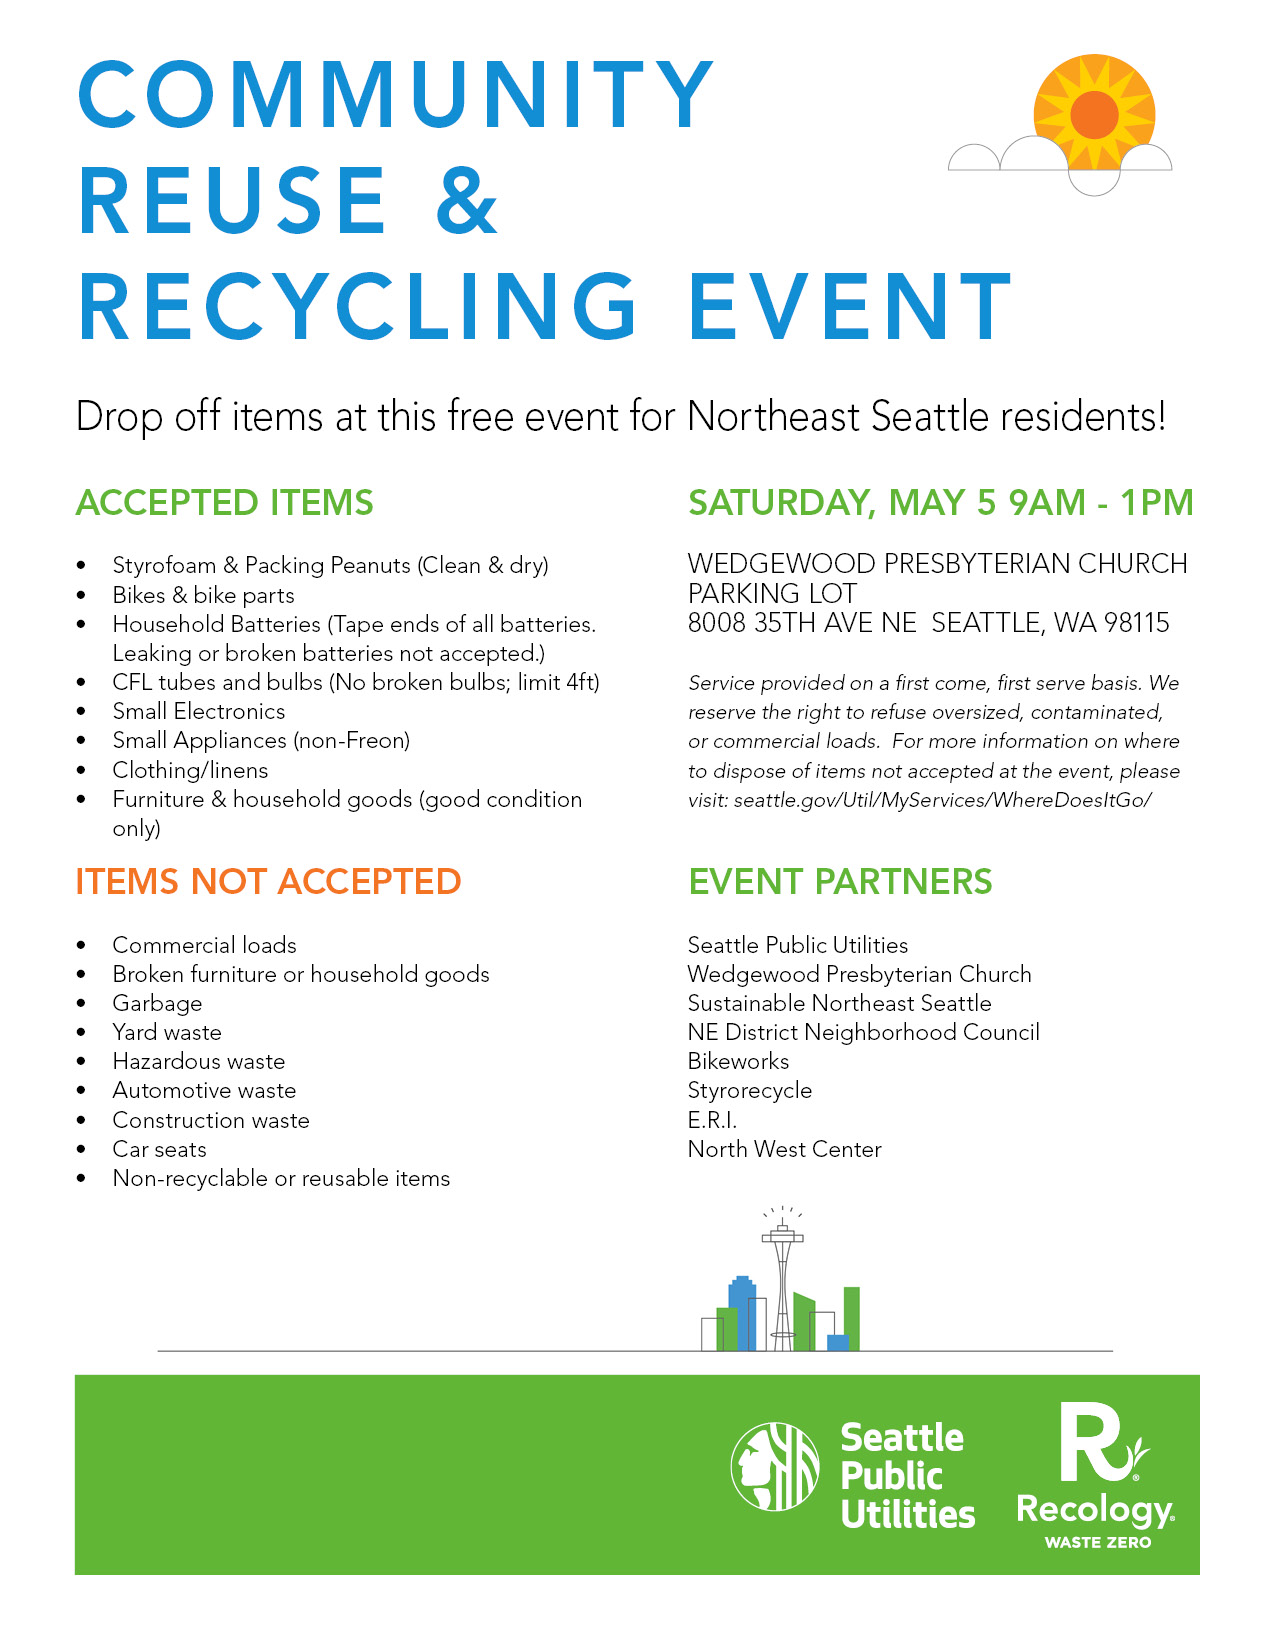 Community Reuse Recycling Event Saturday May 5 From 900 Am 100 Pm Wedgewood Presbyterian Church Parking Lot 8008 35th Ave NE Seattle WA 98115